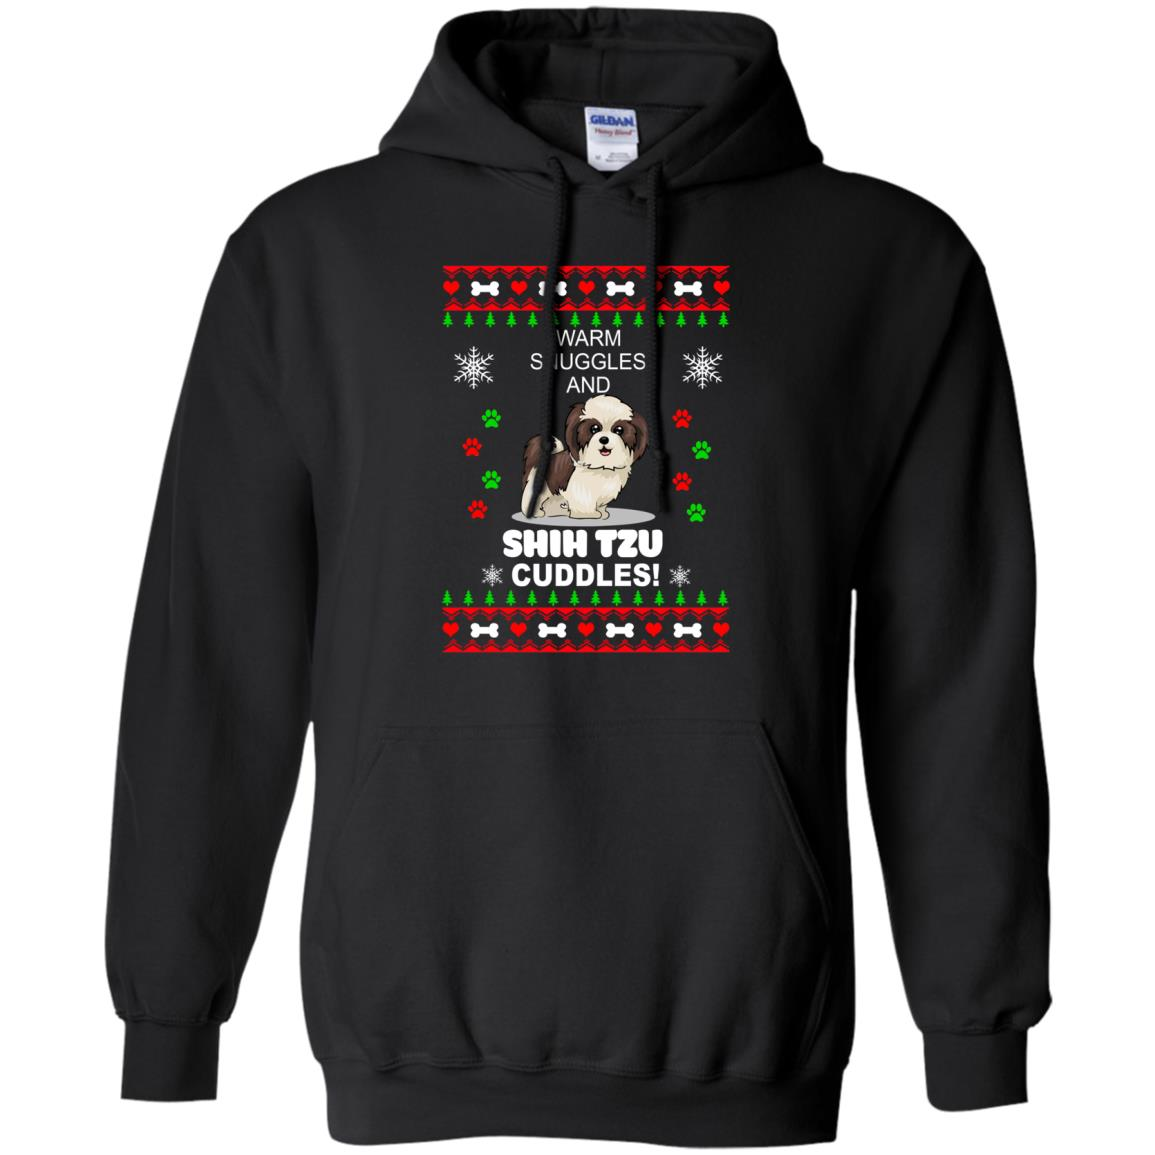 Warm snuggles and ShihTzu cuddles Christmas Sweater, Shirt - image 3984